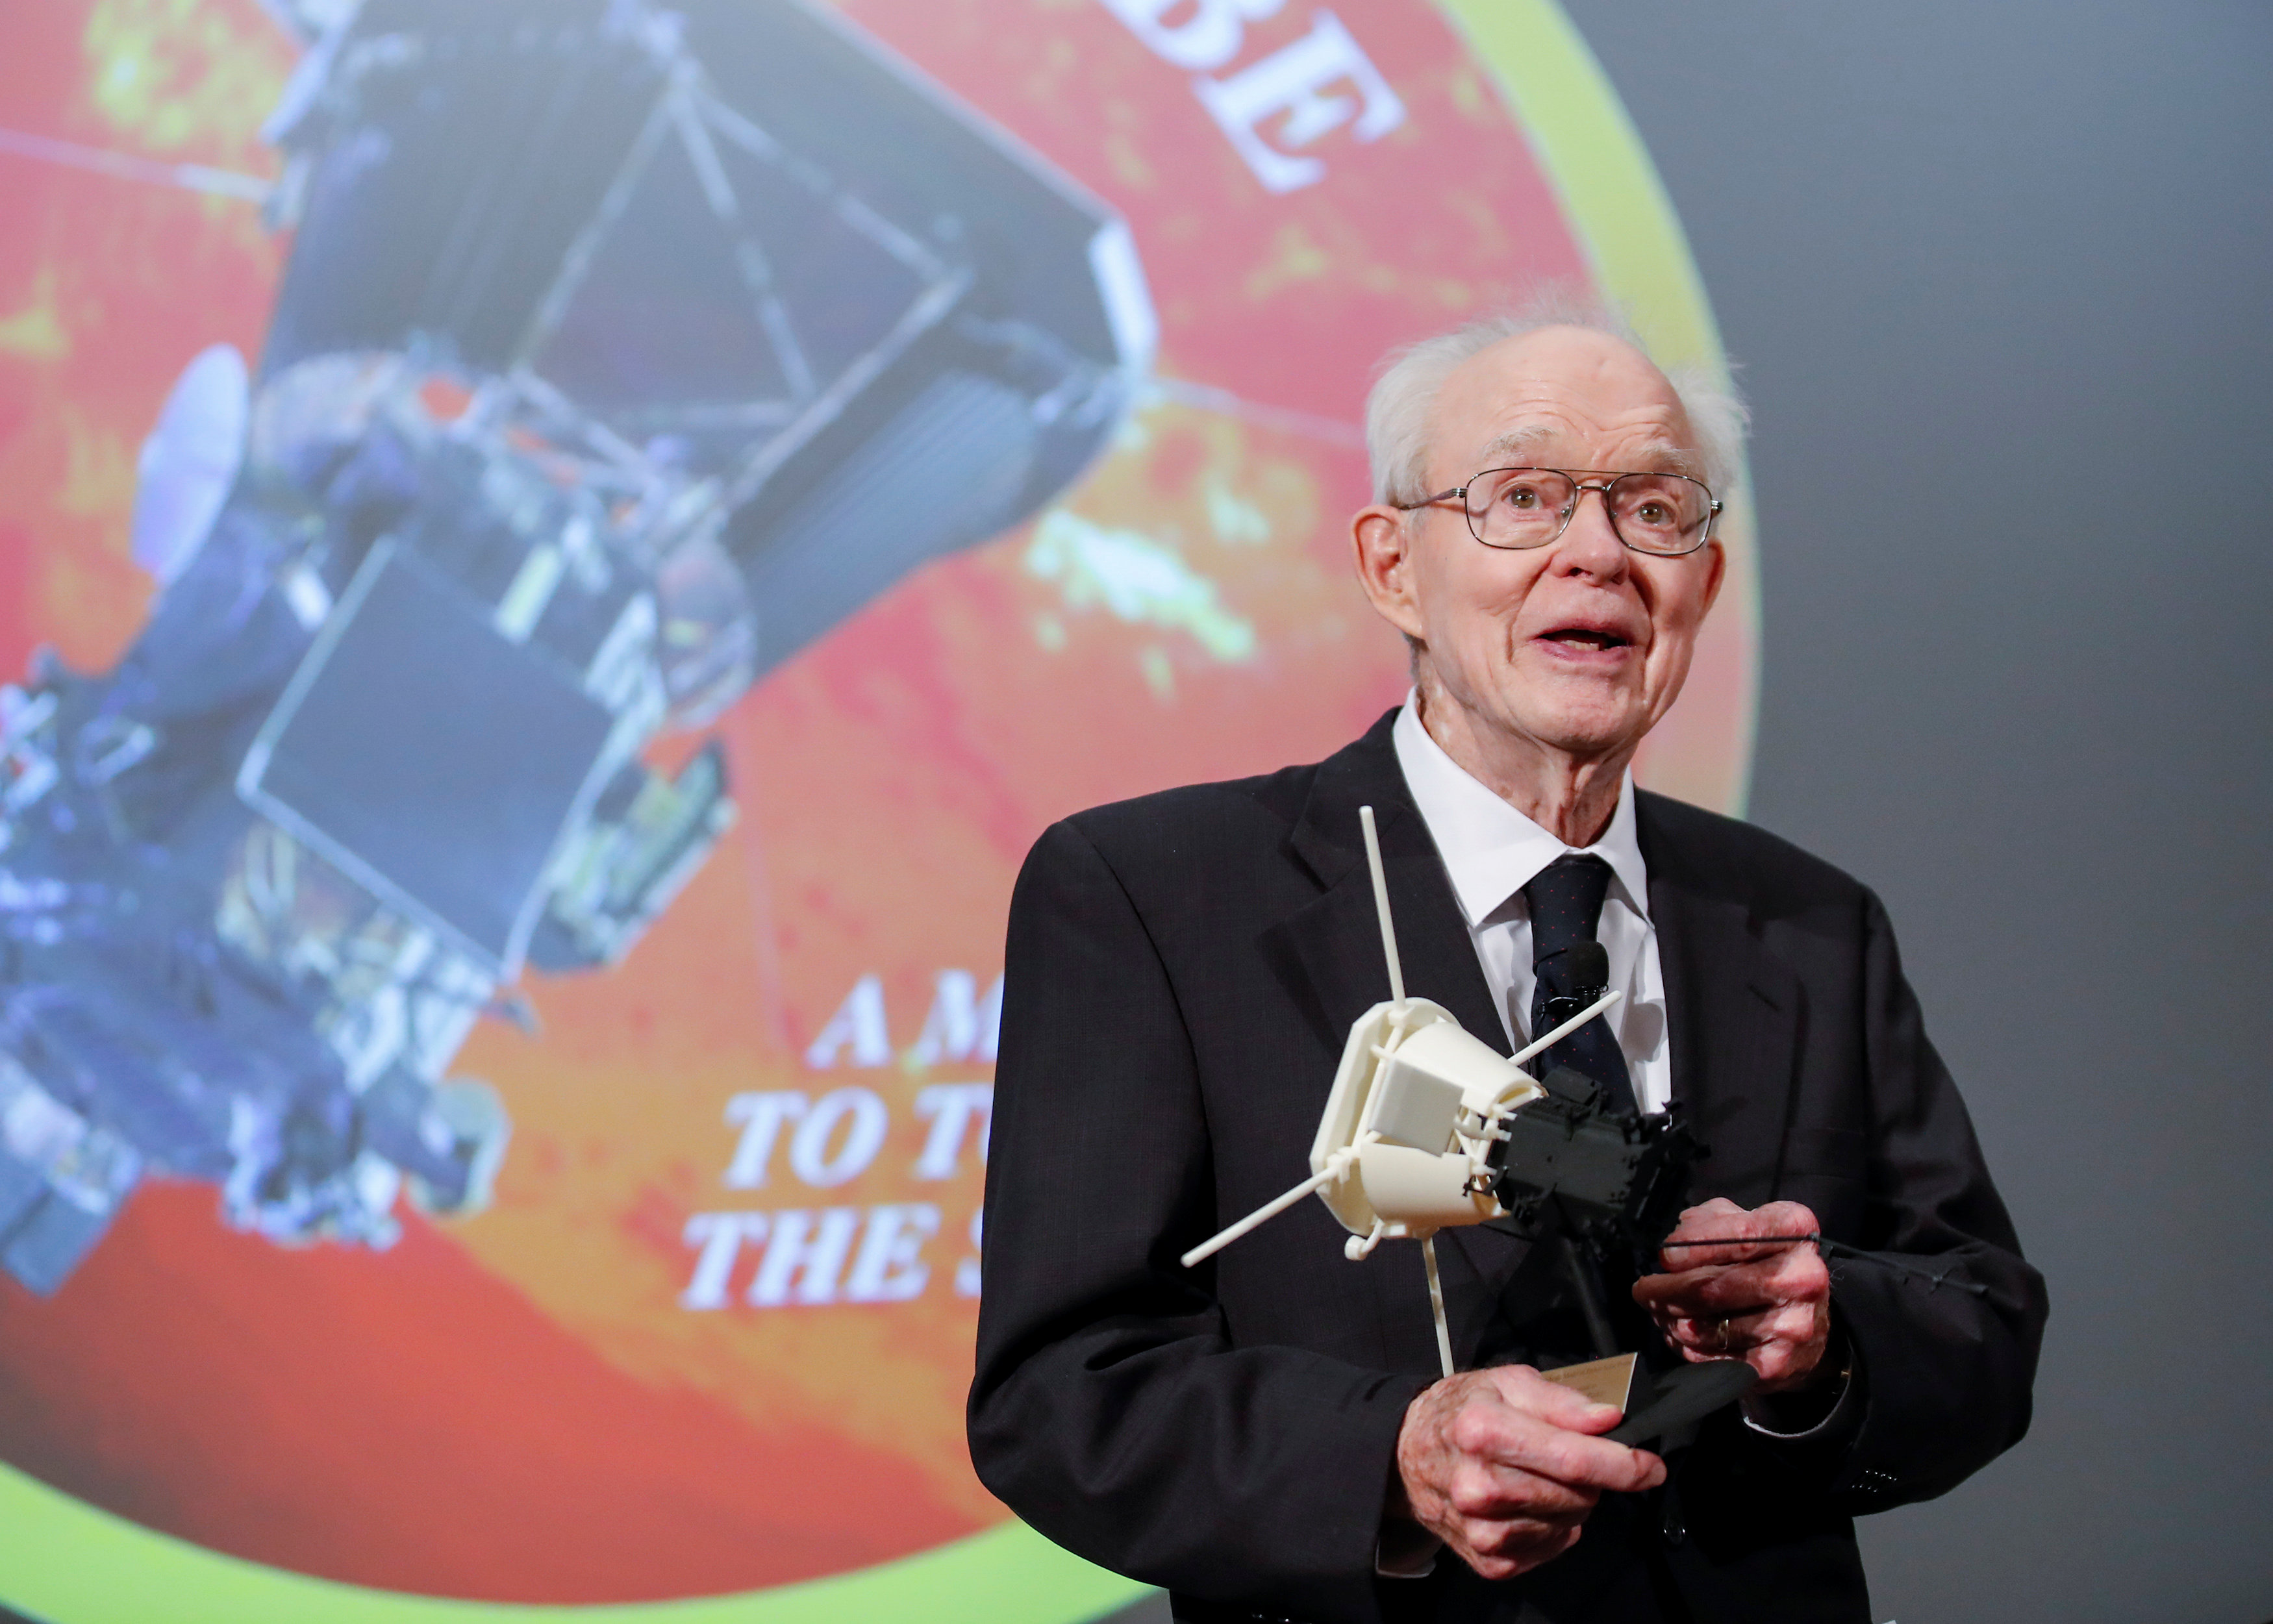 Dr. Eugene Parker, University of Chicago astrophysicist, smiles after receiving a first scale model of Parker Solar Probe during the NASA announcement on its first mission to fly directly into the sun's atmosphere at the University of Chicago in Chicago, Illinois, U.S. May 31, 2017. REUTERS/Kamil Krzaczynski